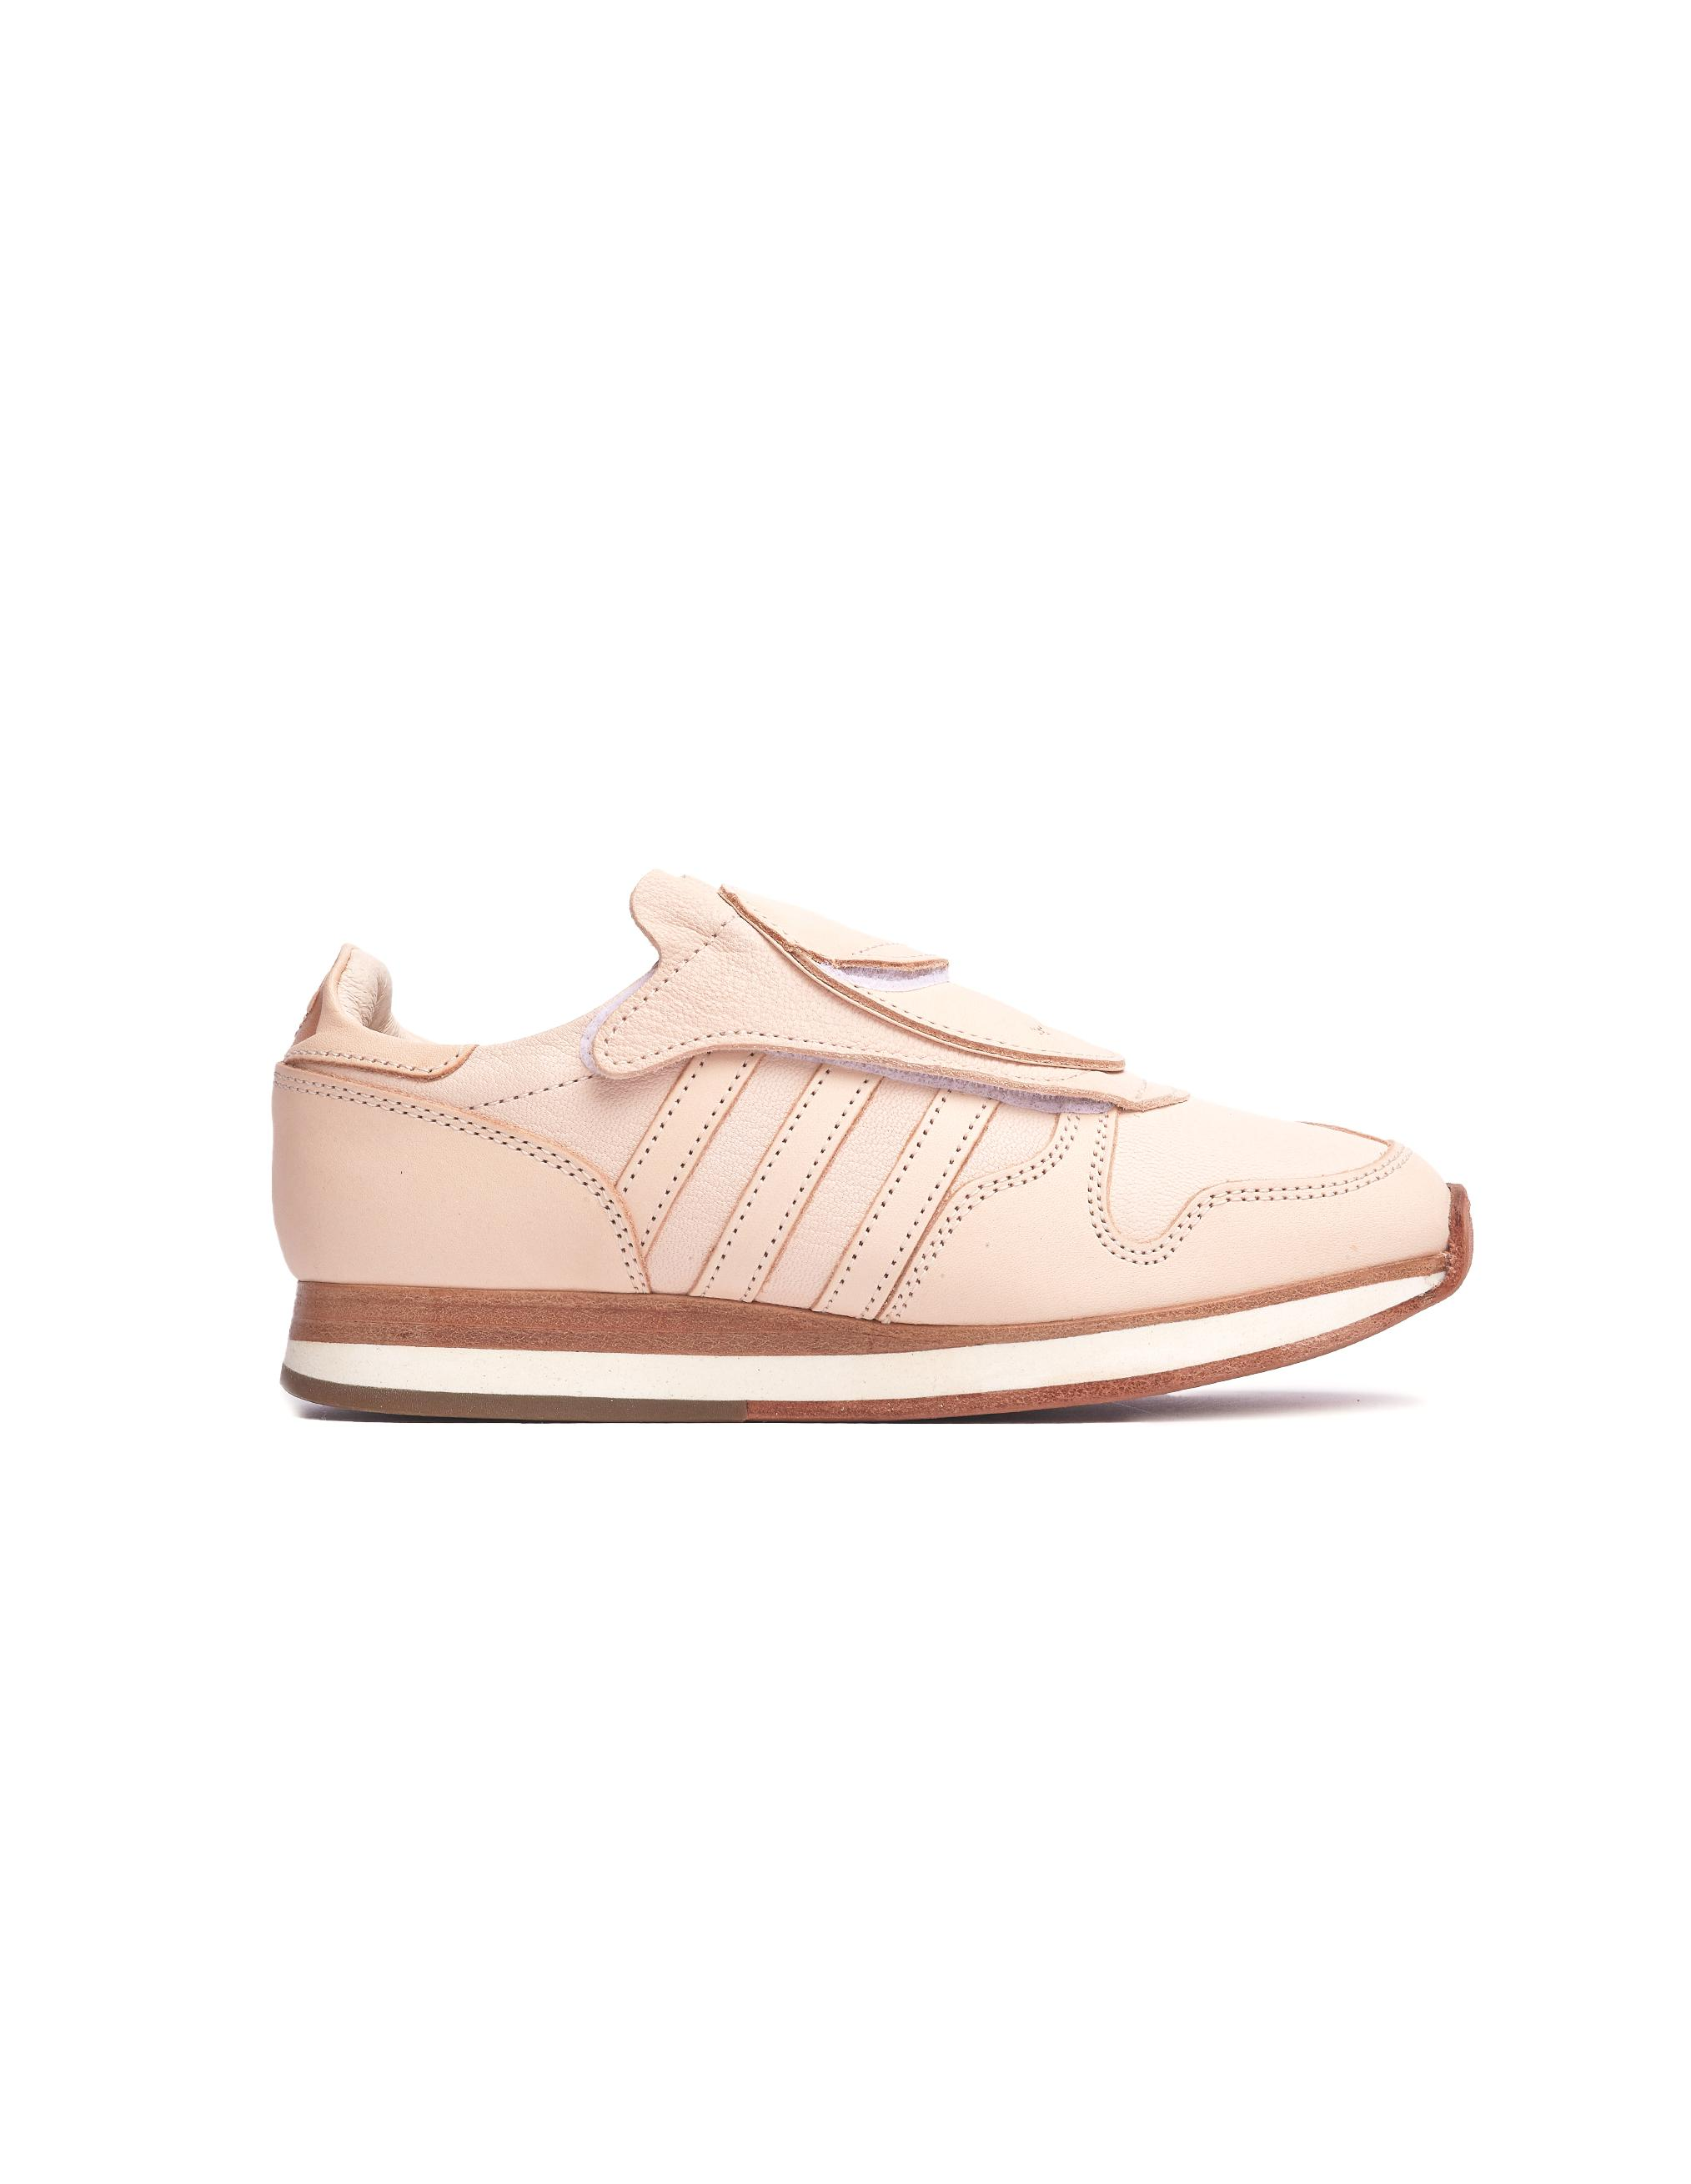 brand new 824fc 17120 Hender Scheme. Women s Natural Adidas Micropacer Leather Sneakers